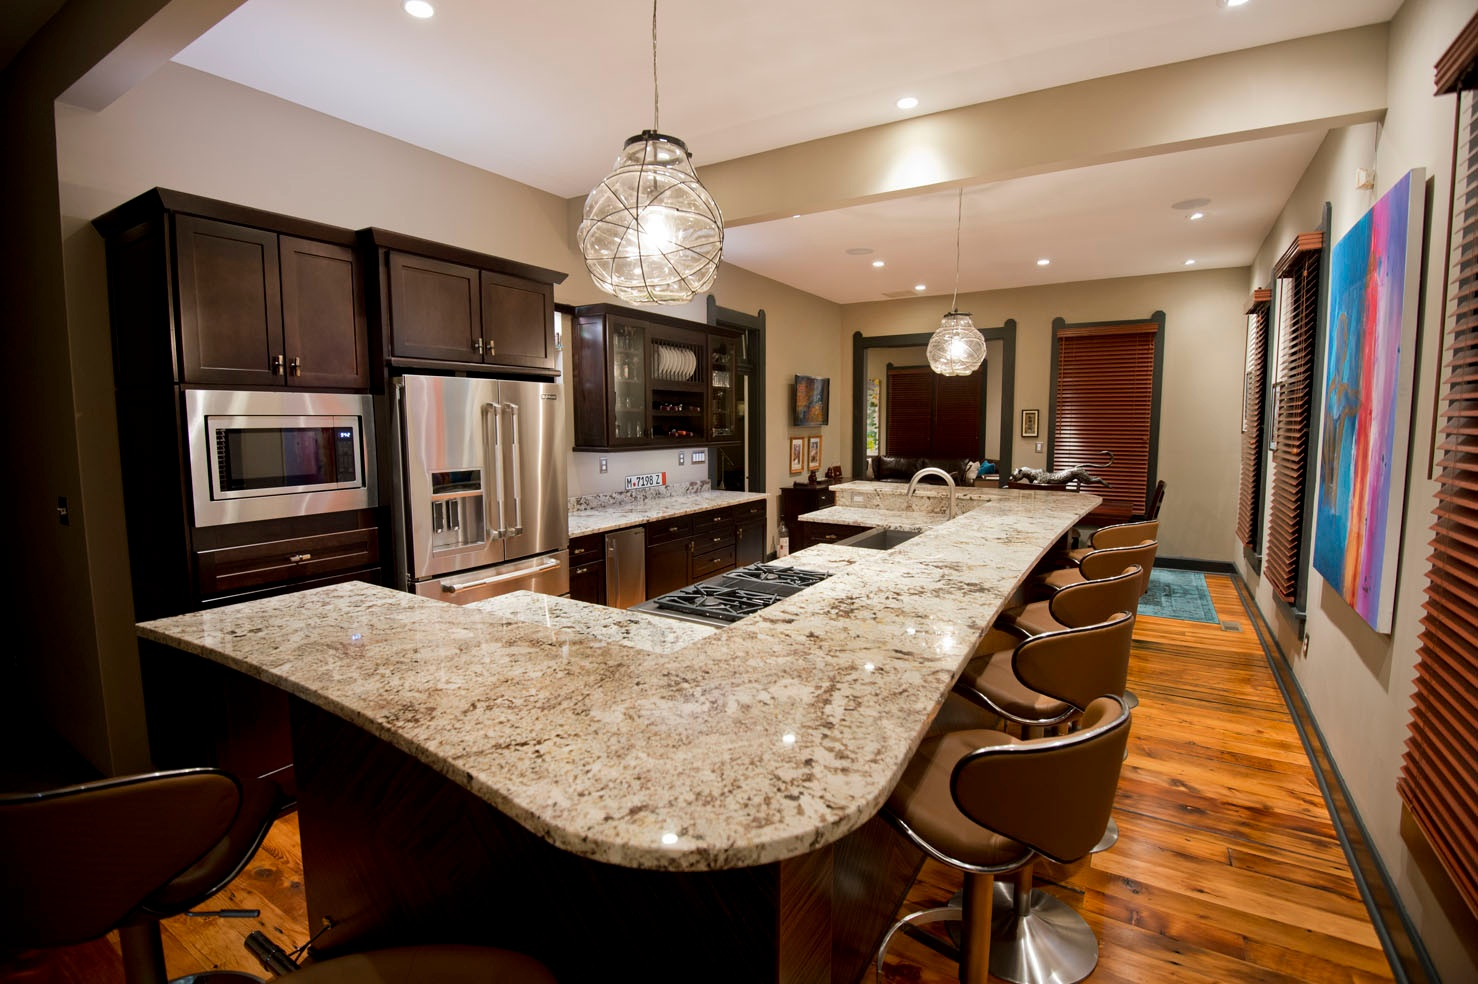 capitol kitchen granite entity blue how countertops to organize countertop quartz pictures